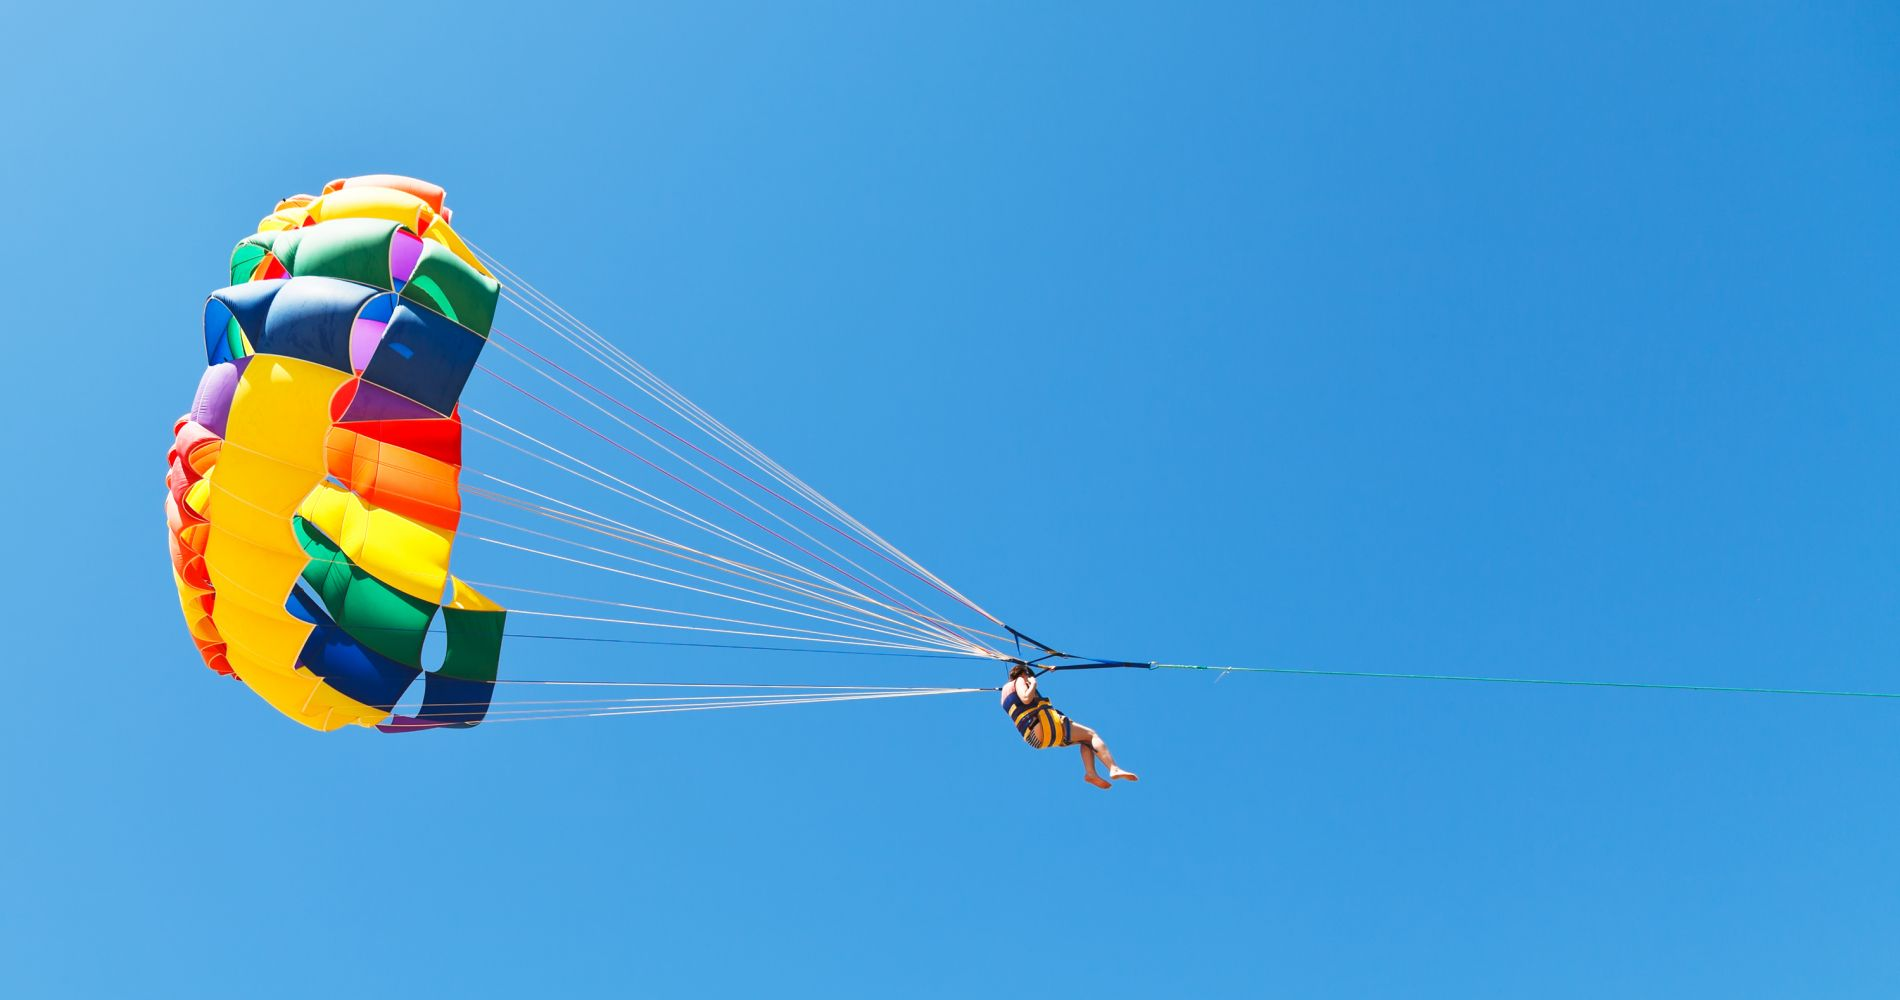 Parasailing Lake Wanaka New Zealand Tinggly Experience Gifts